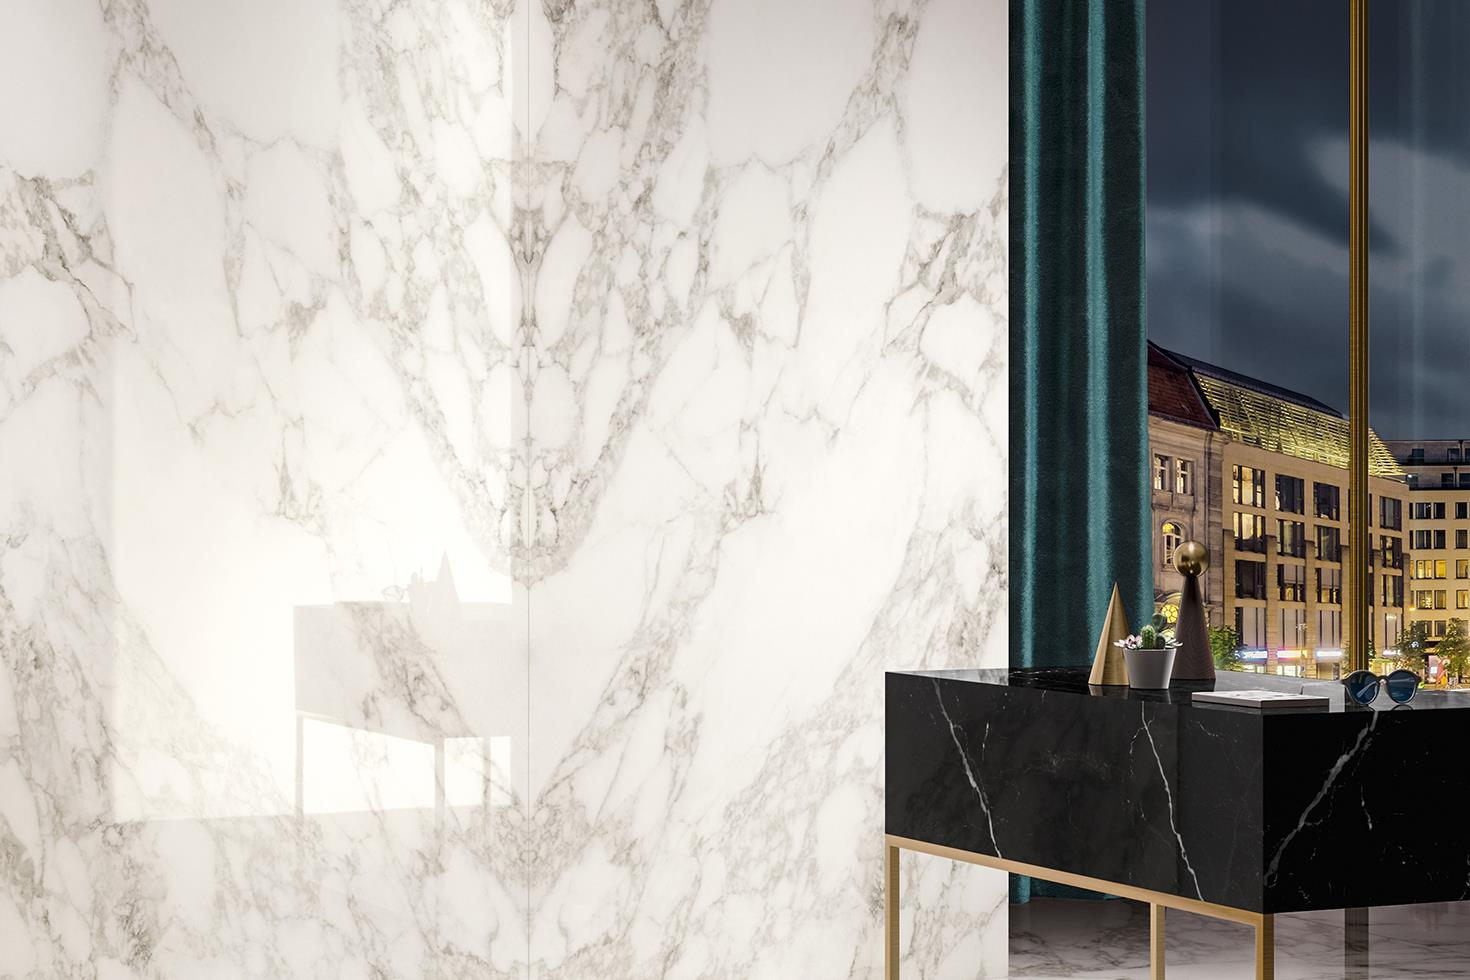 A mirror effect, inspired by the typical craftsmanship of marble